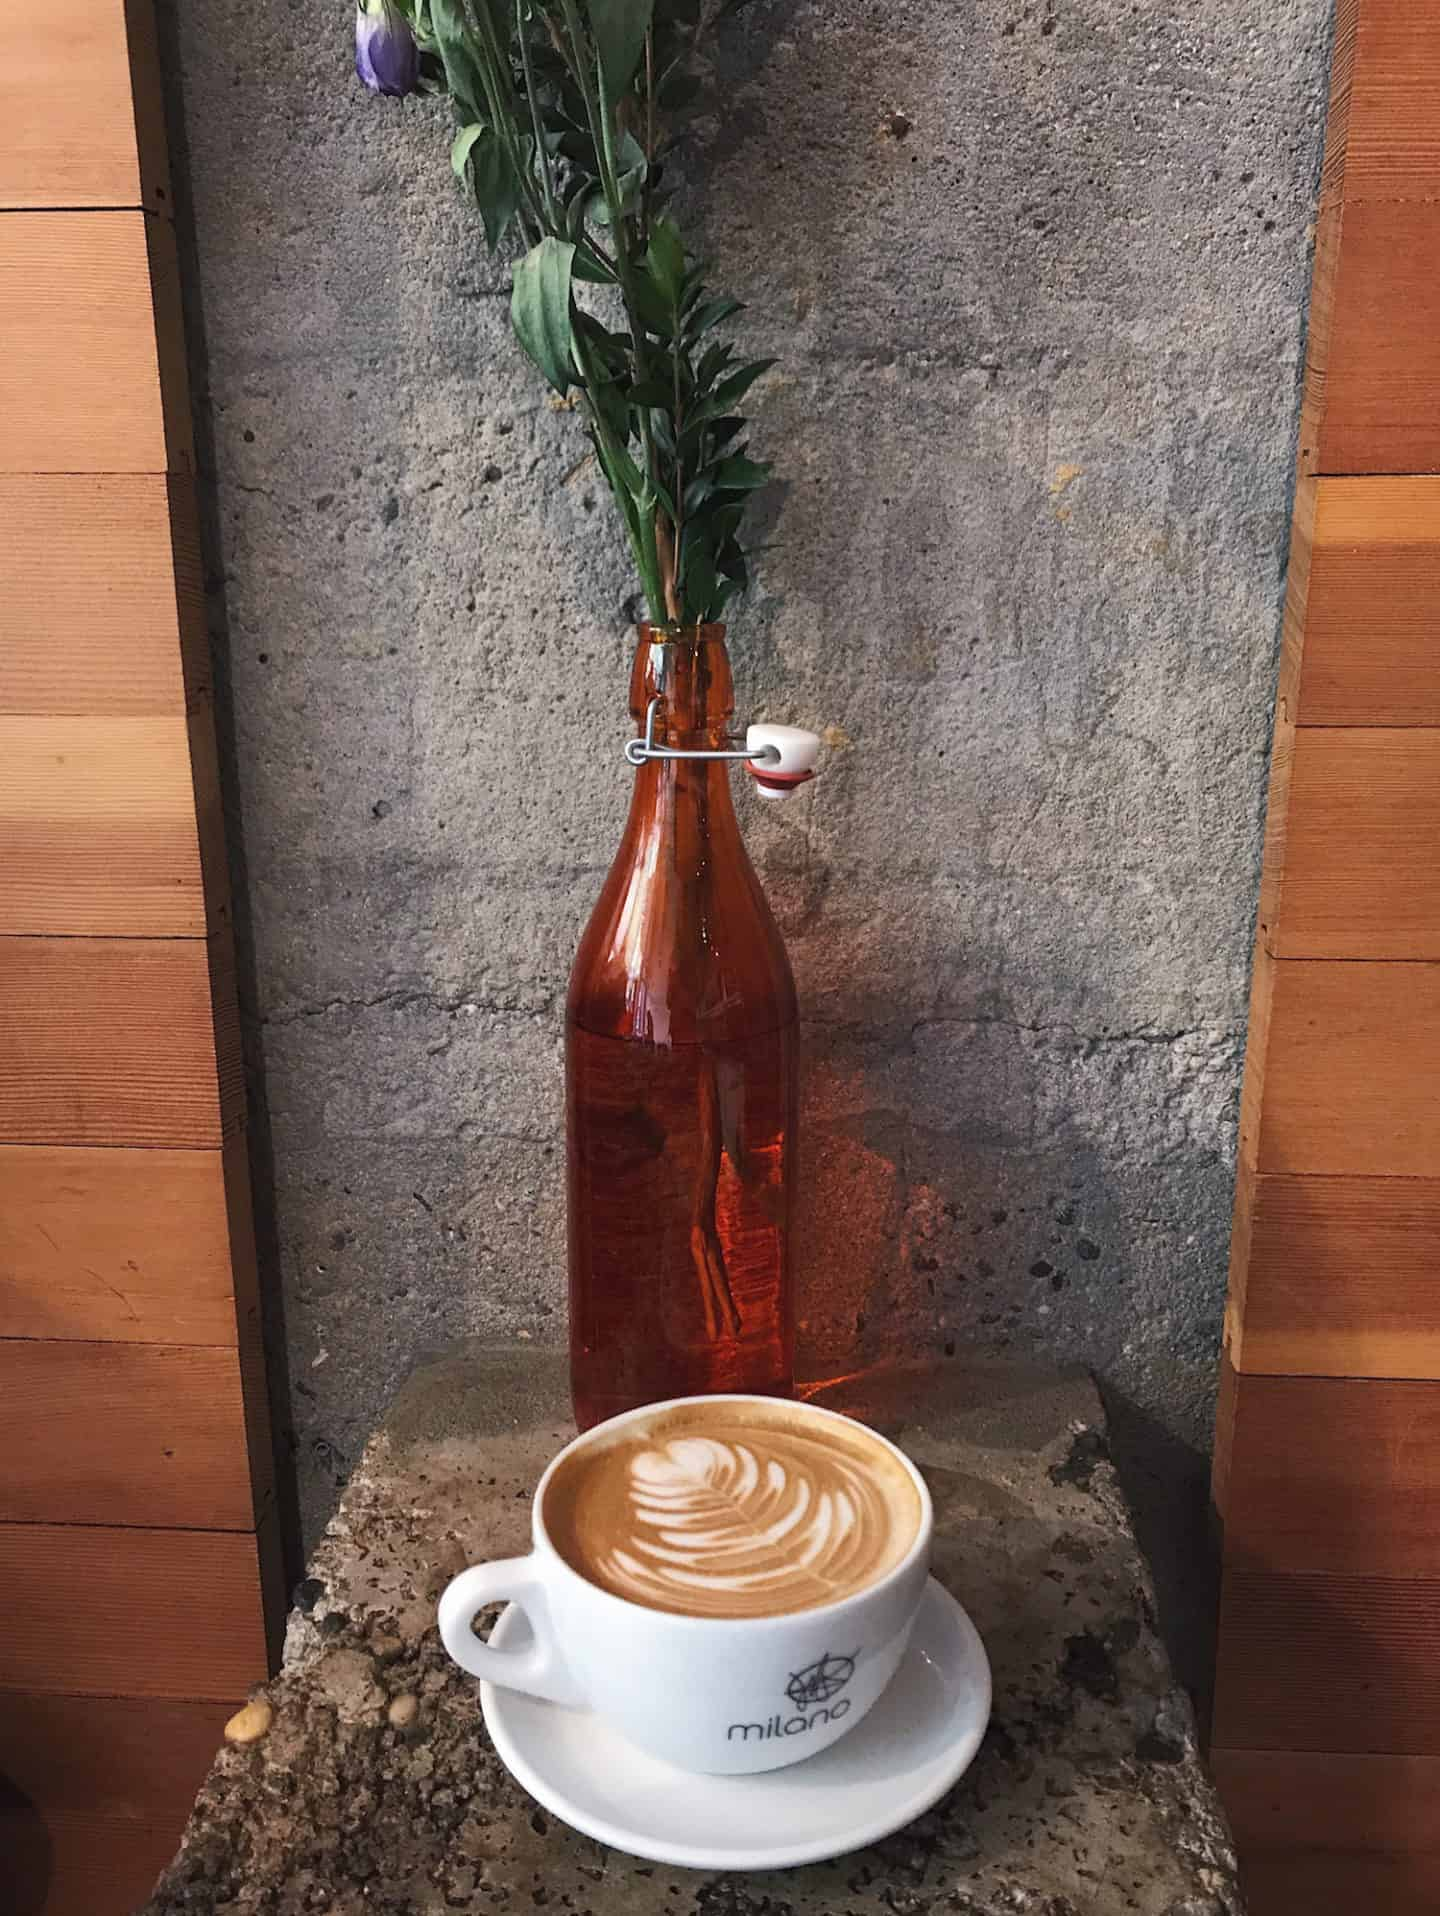 Milano Coffee Roasters in Vancouver, British Columbia